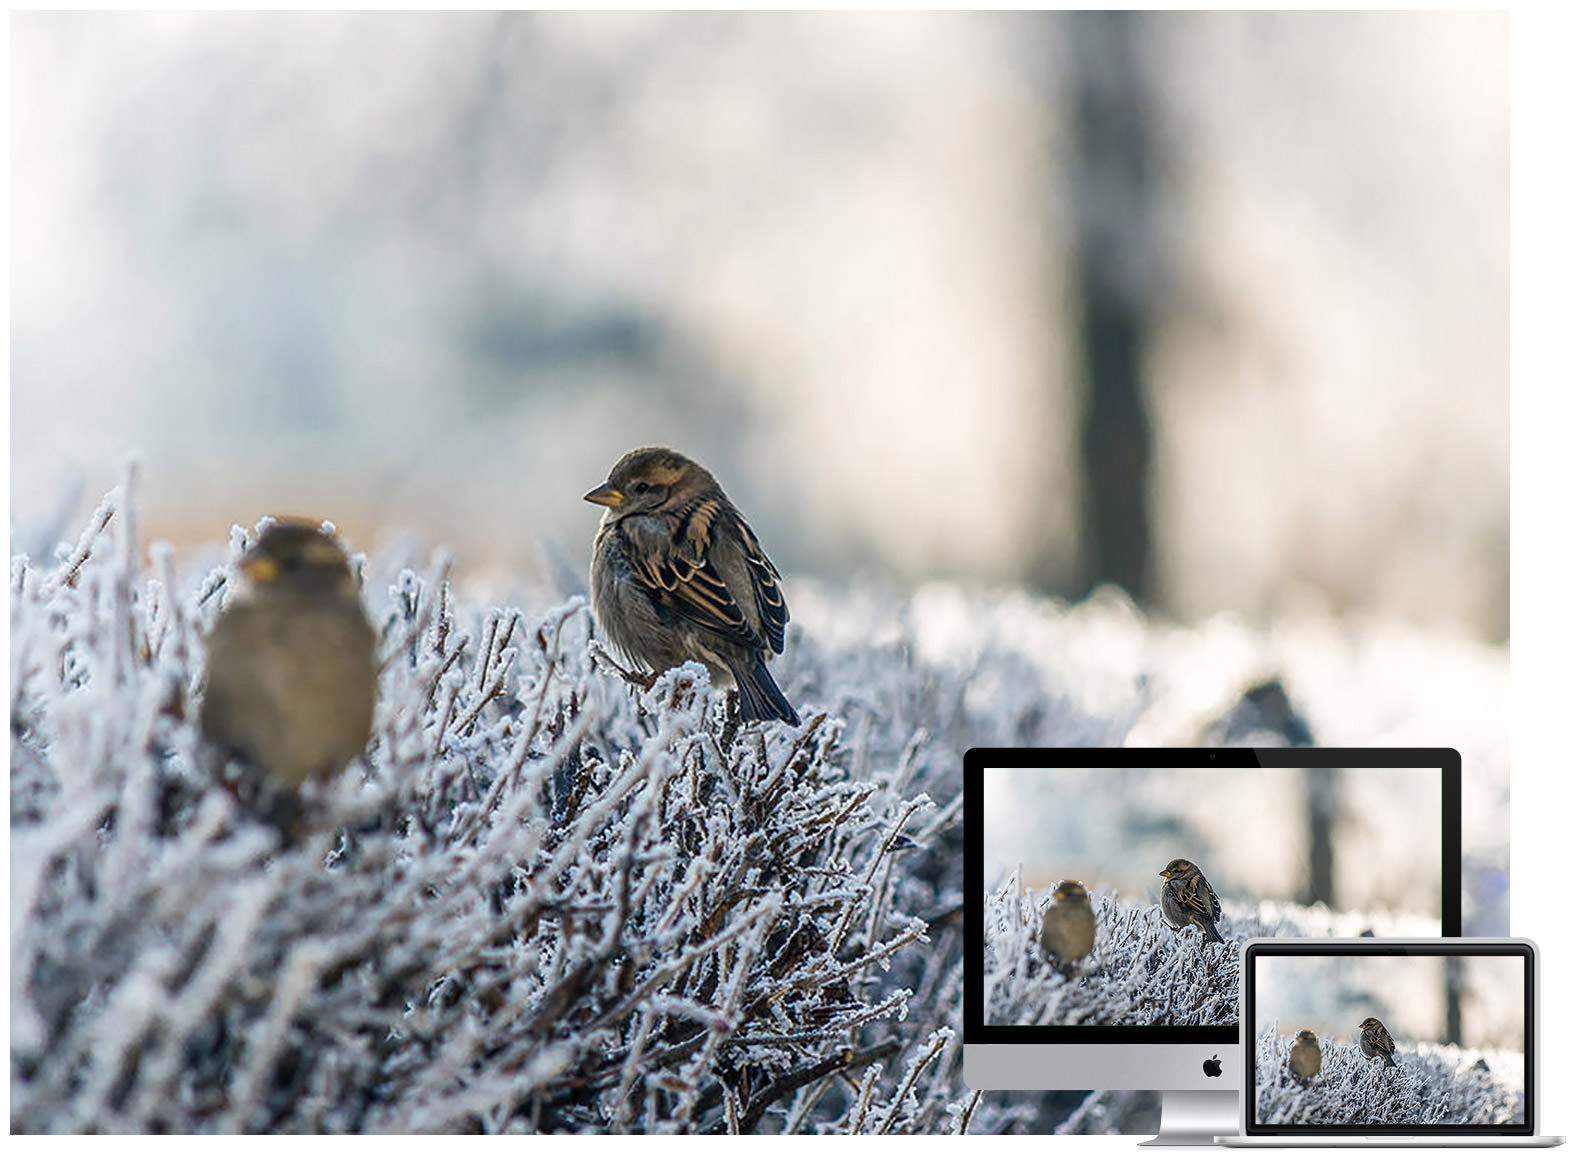 Sparrows on Snowy Grass